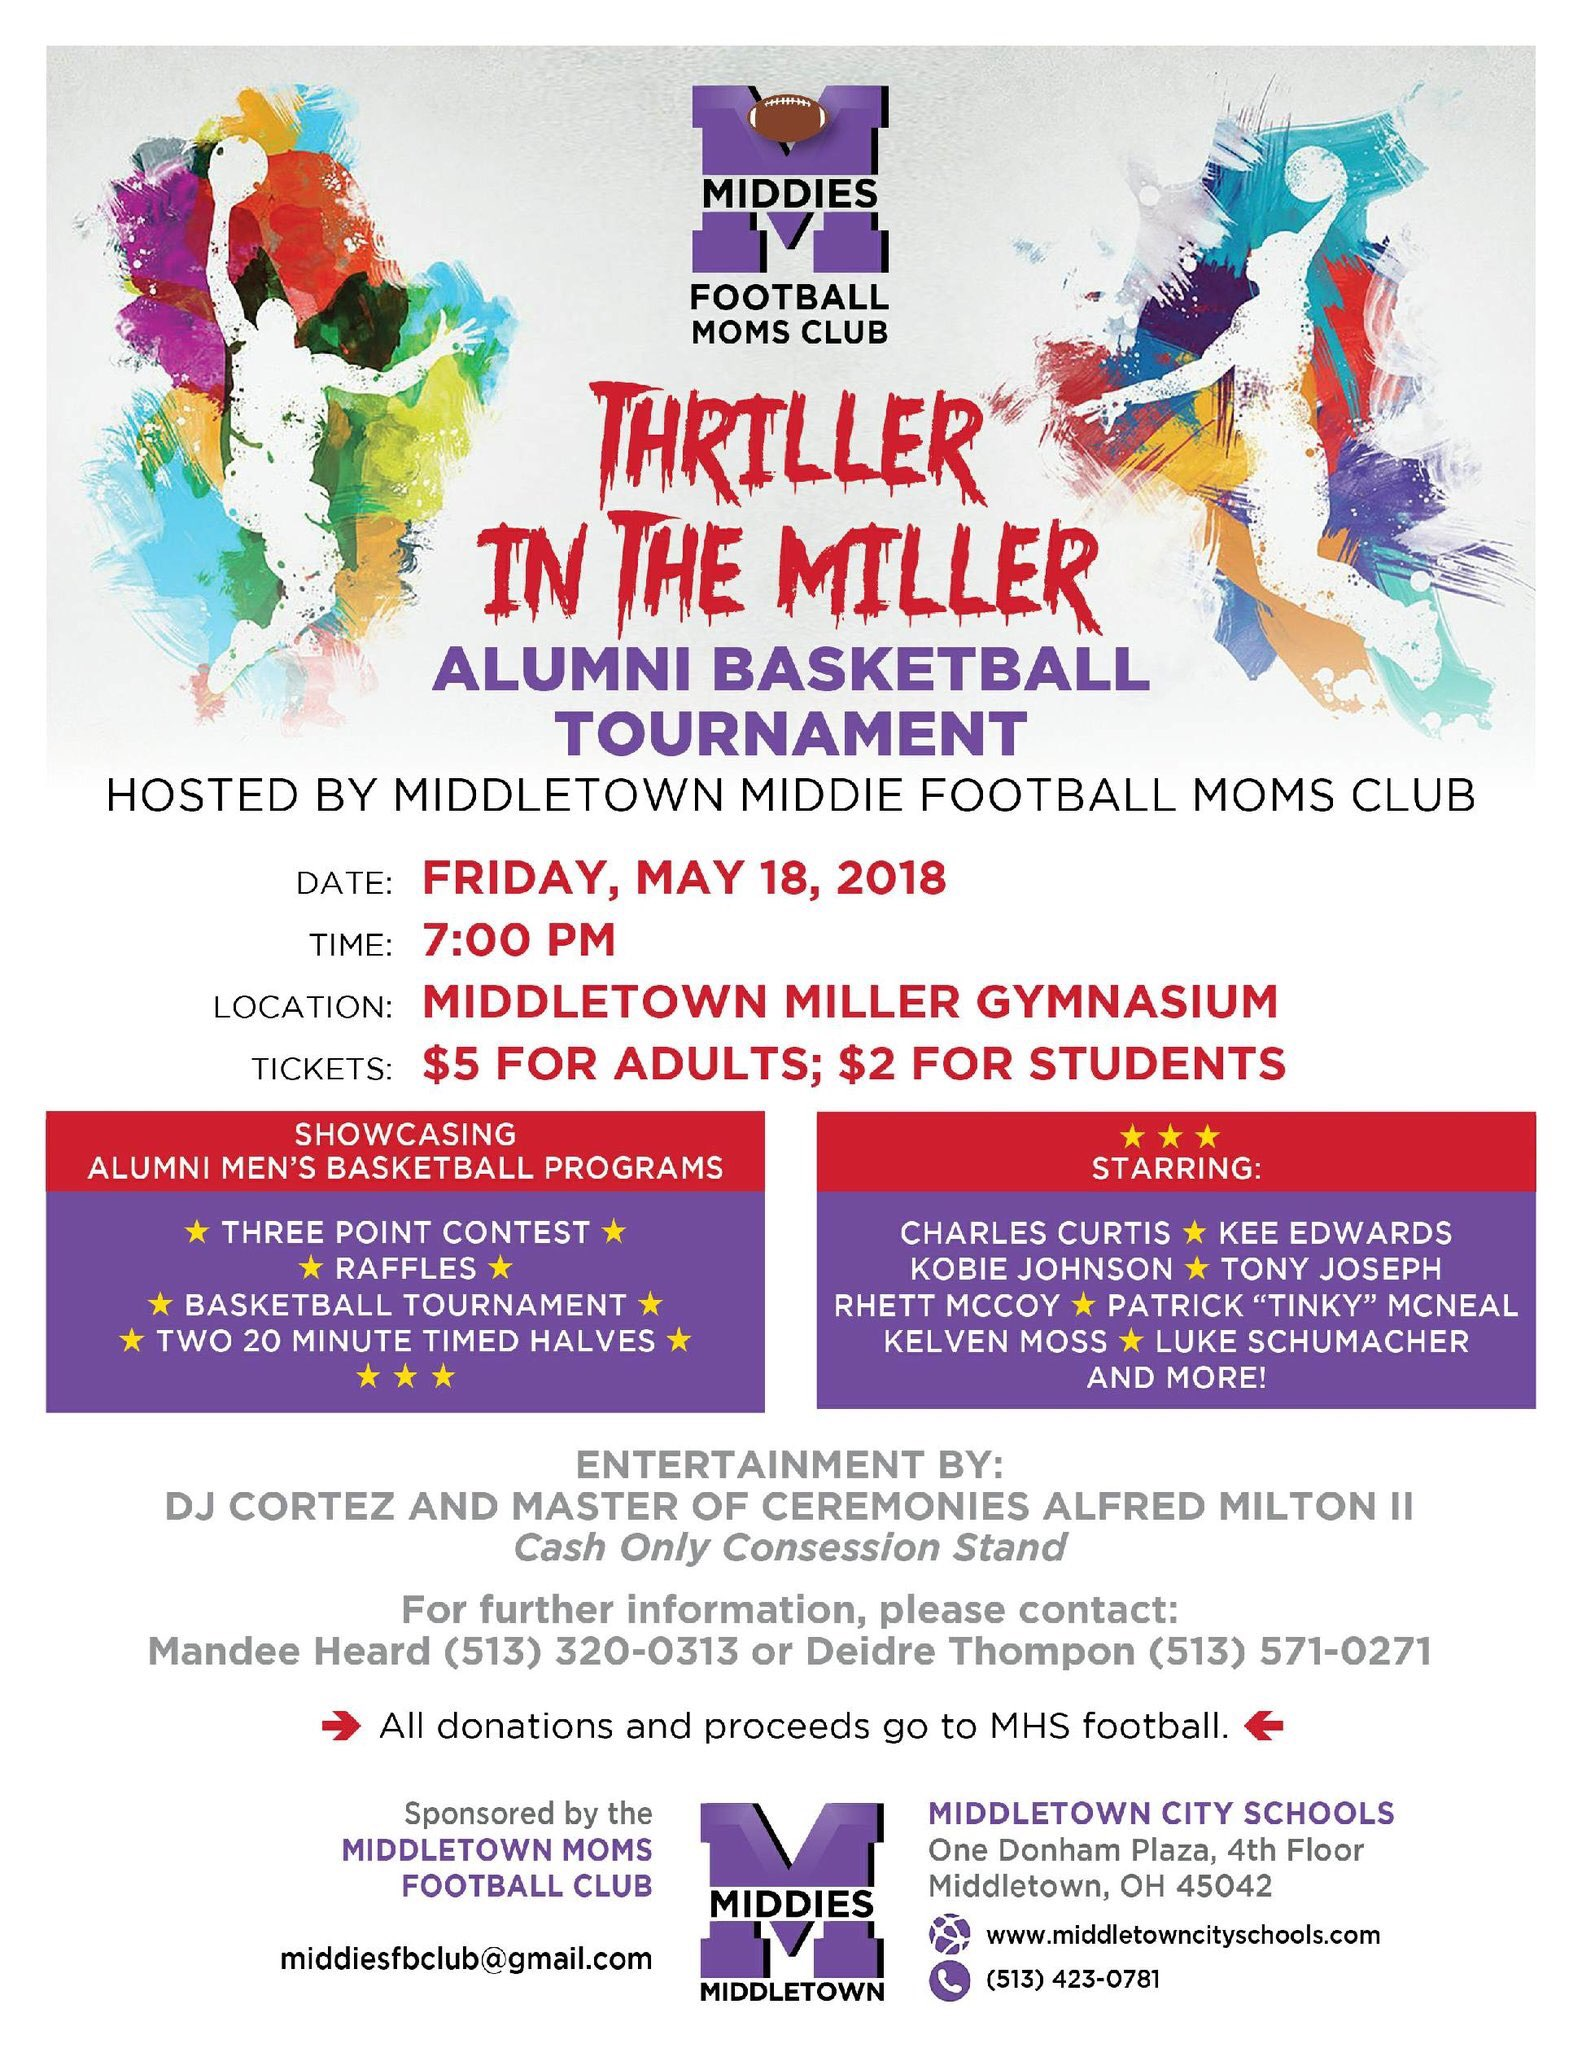 Middie Alumni Basketball Game @ Old Miller Gym Friday May 18th